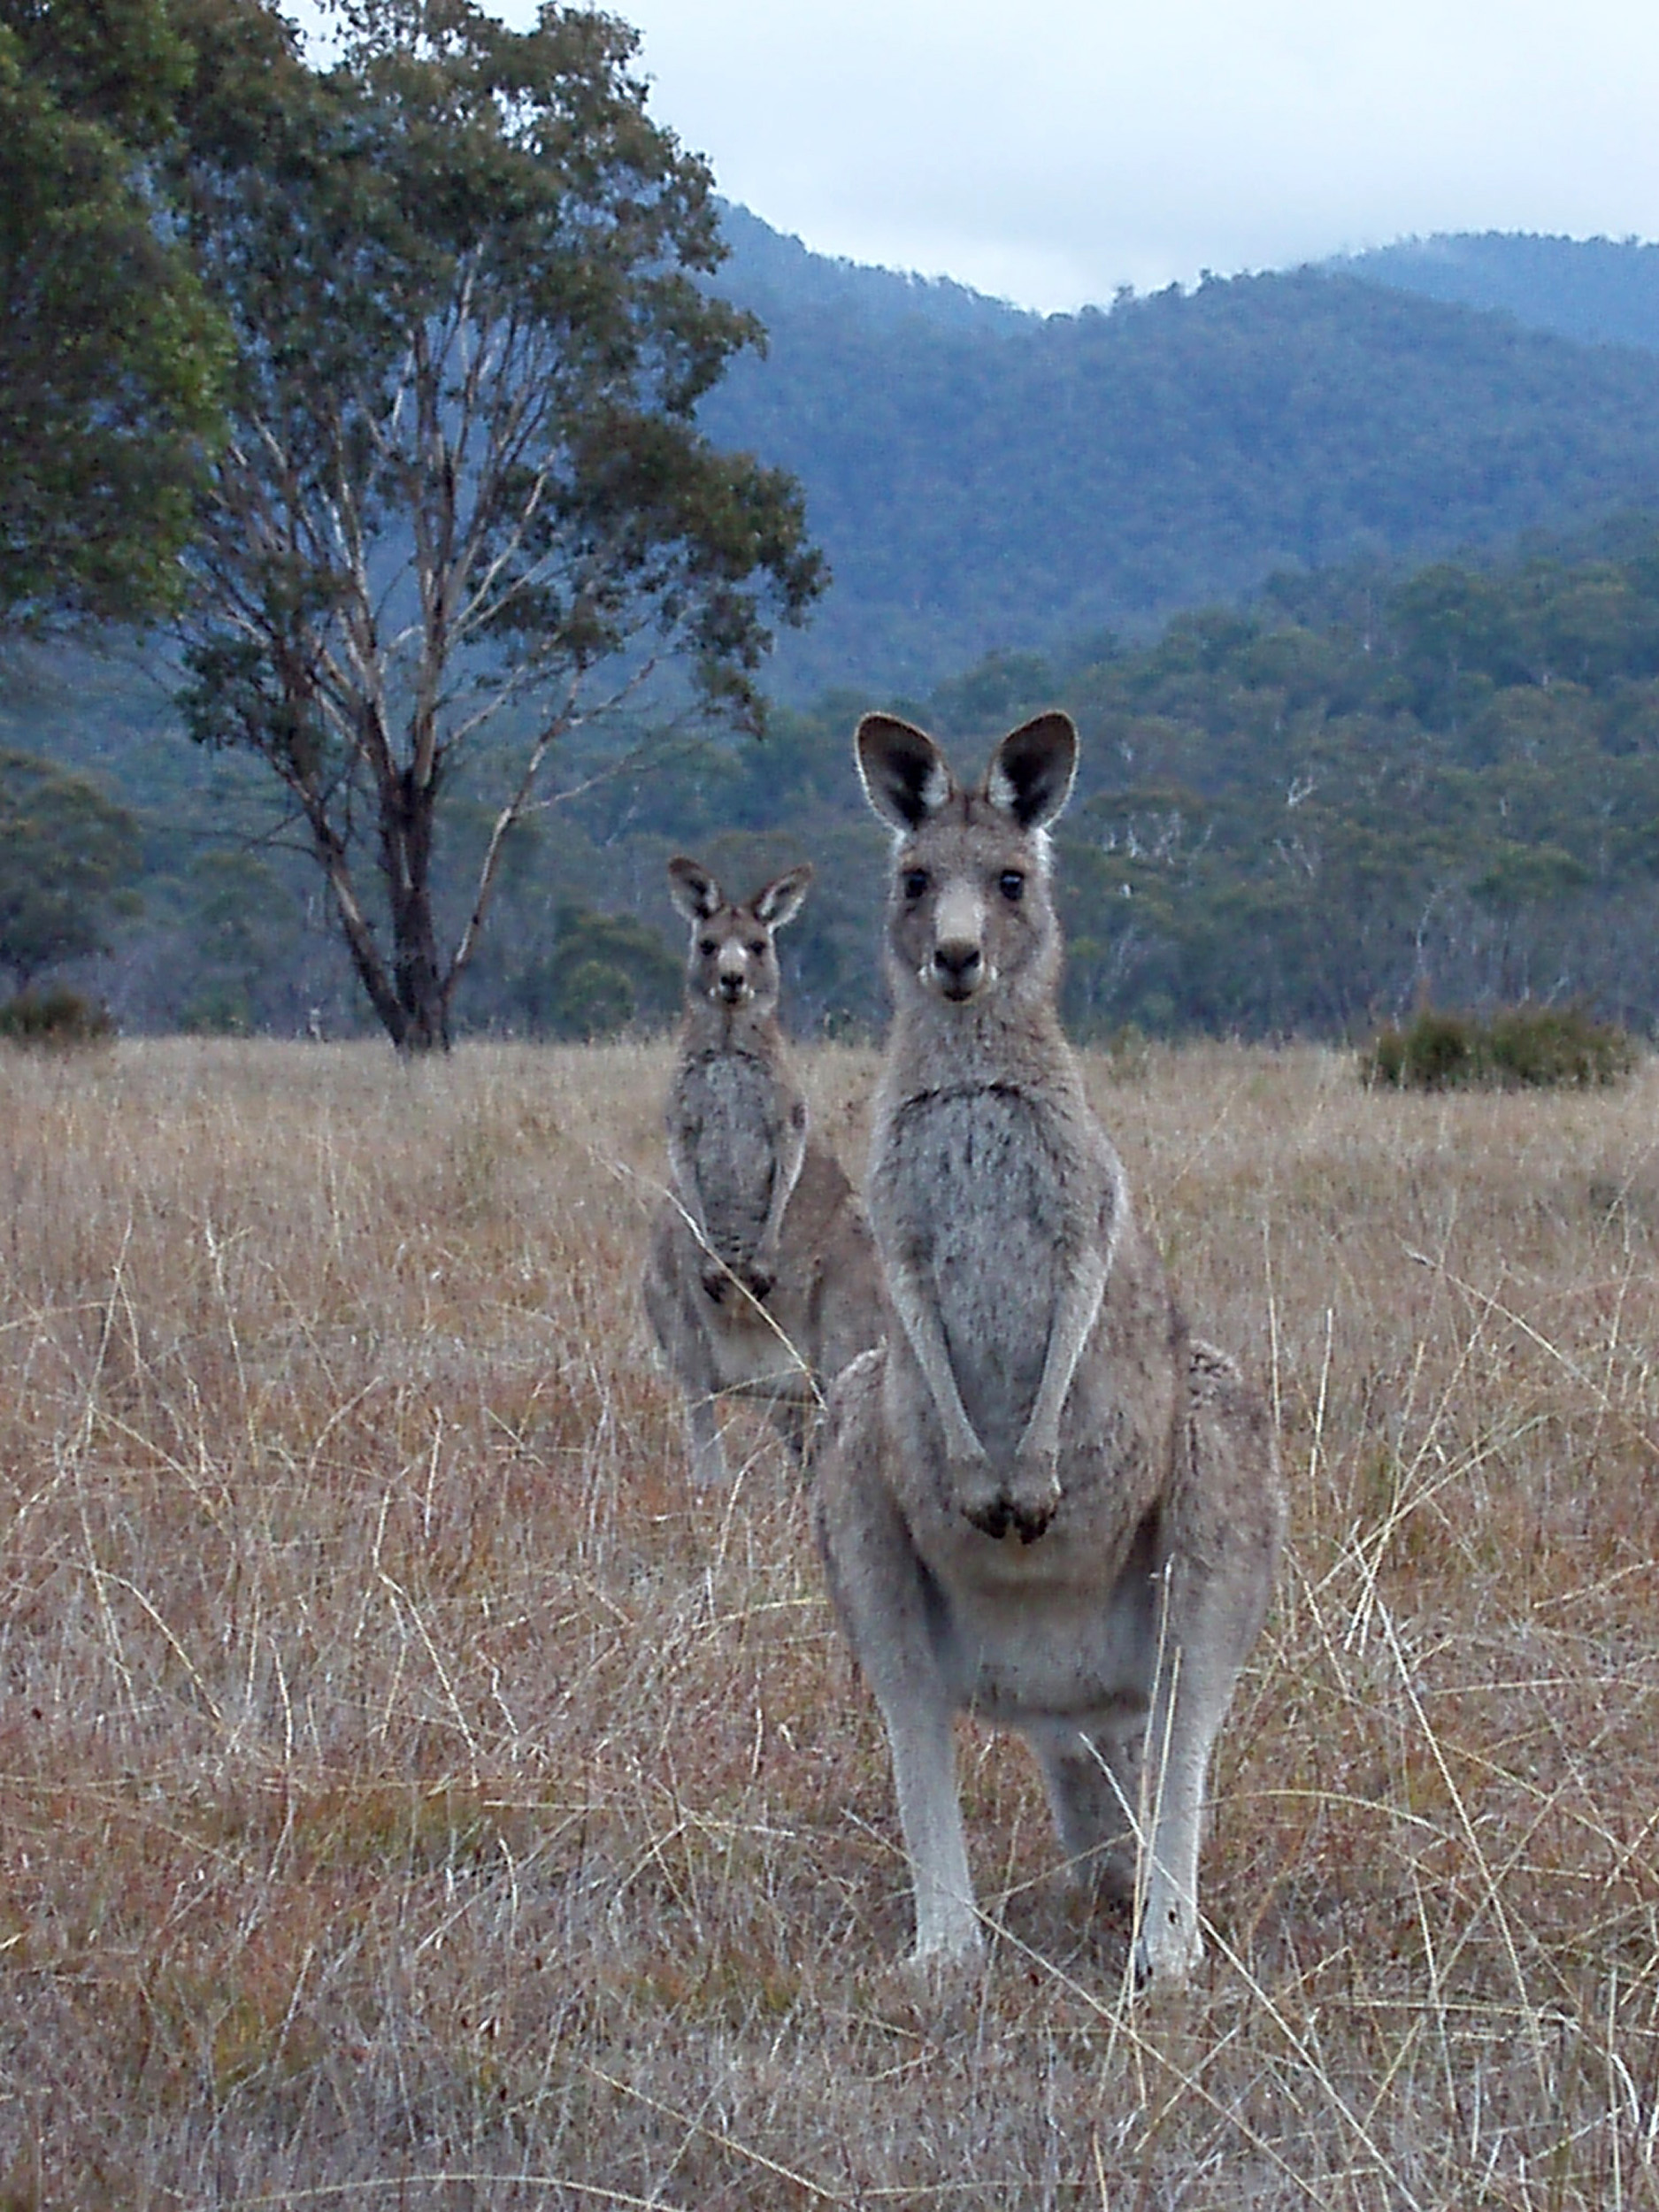 a pair of kangaroos on a grassy plain at dusk